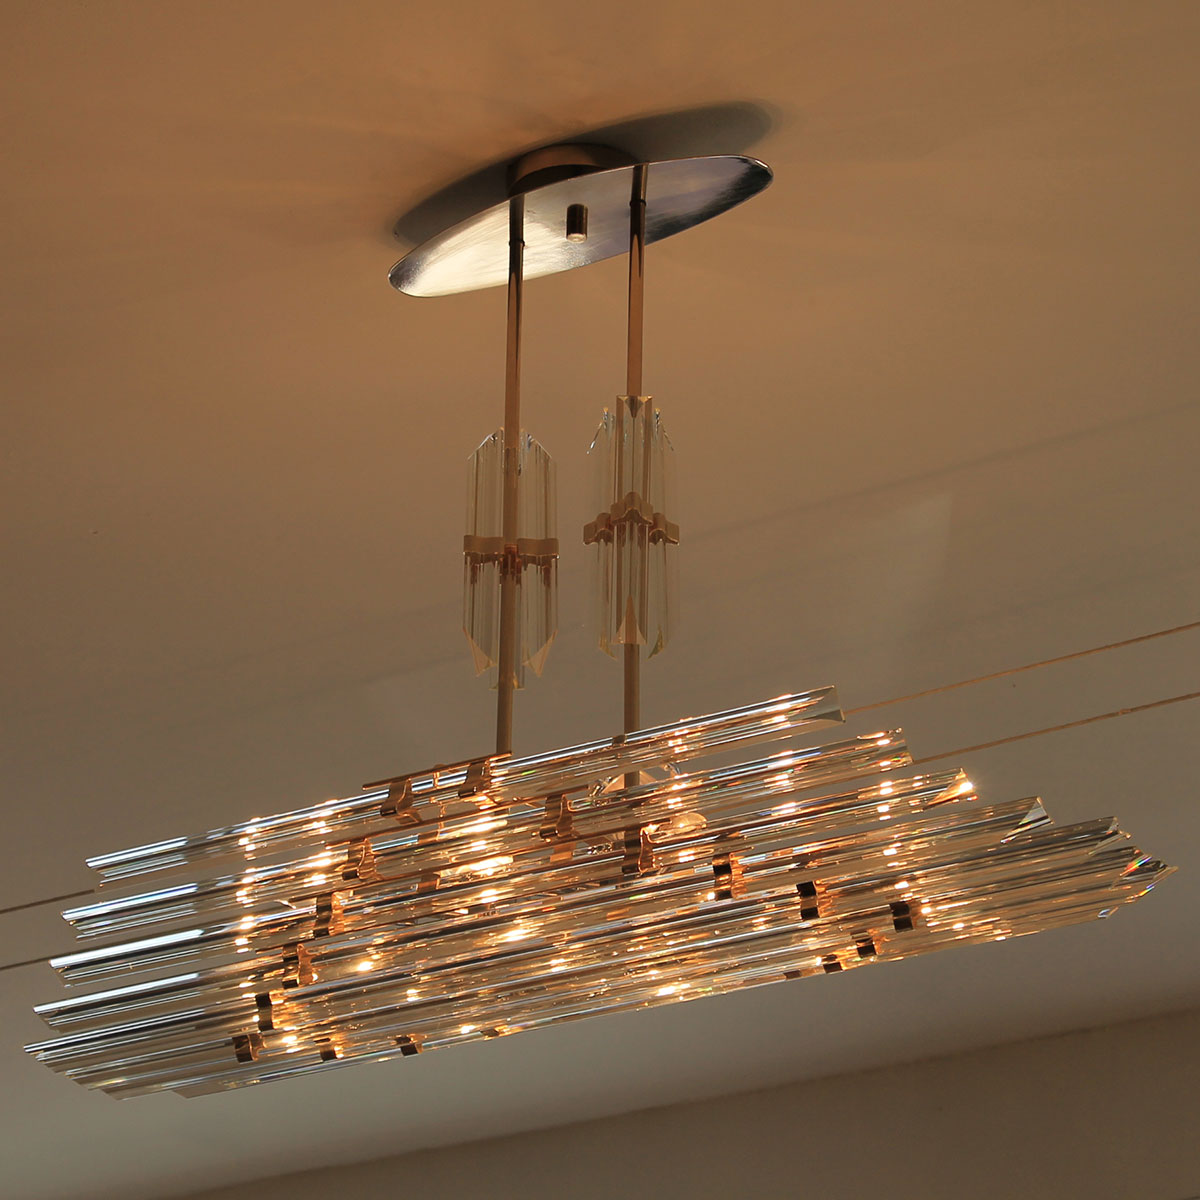 Stunning Hollywood Regency Glass Chandelier by Camer of Murano, Italy